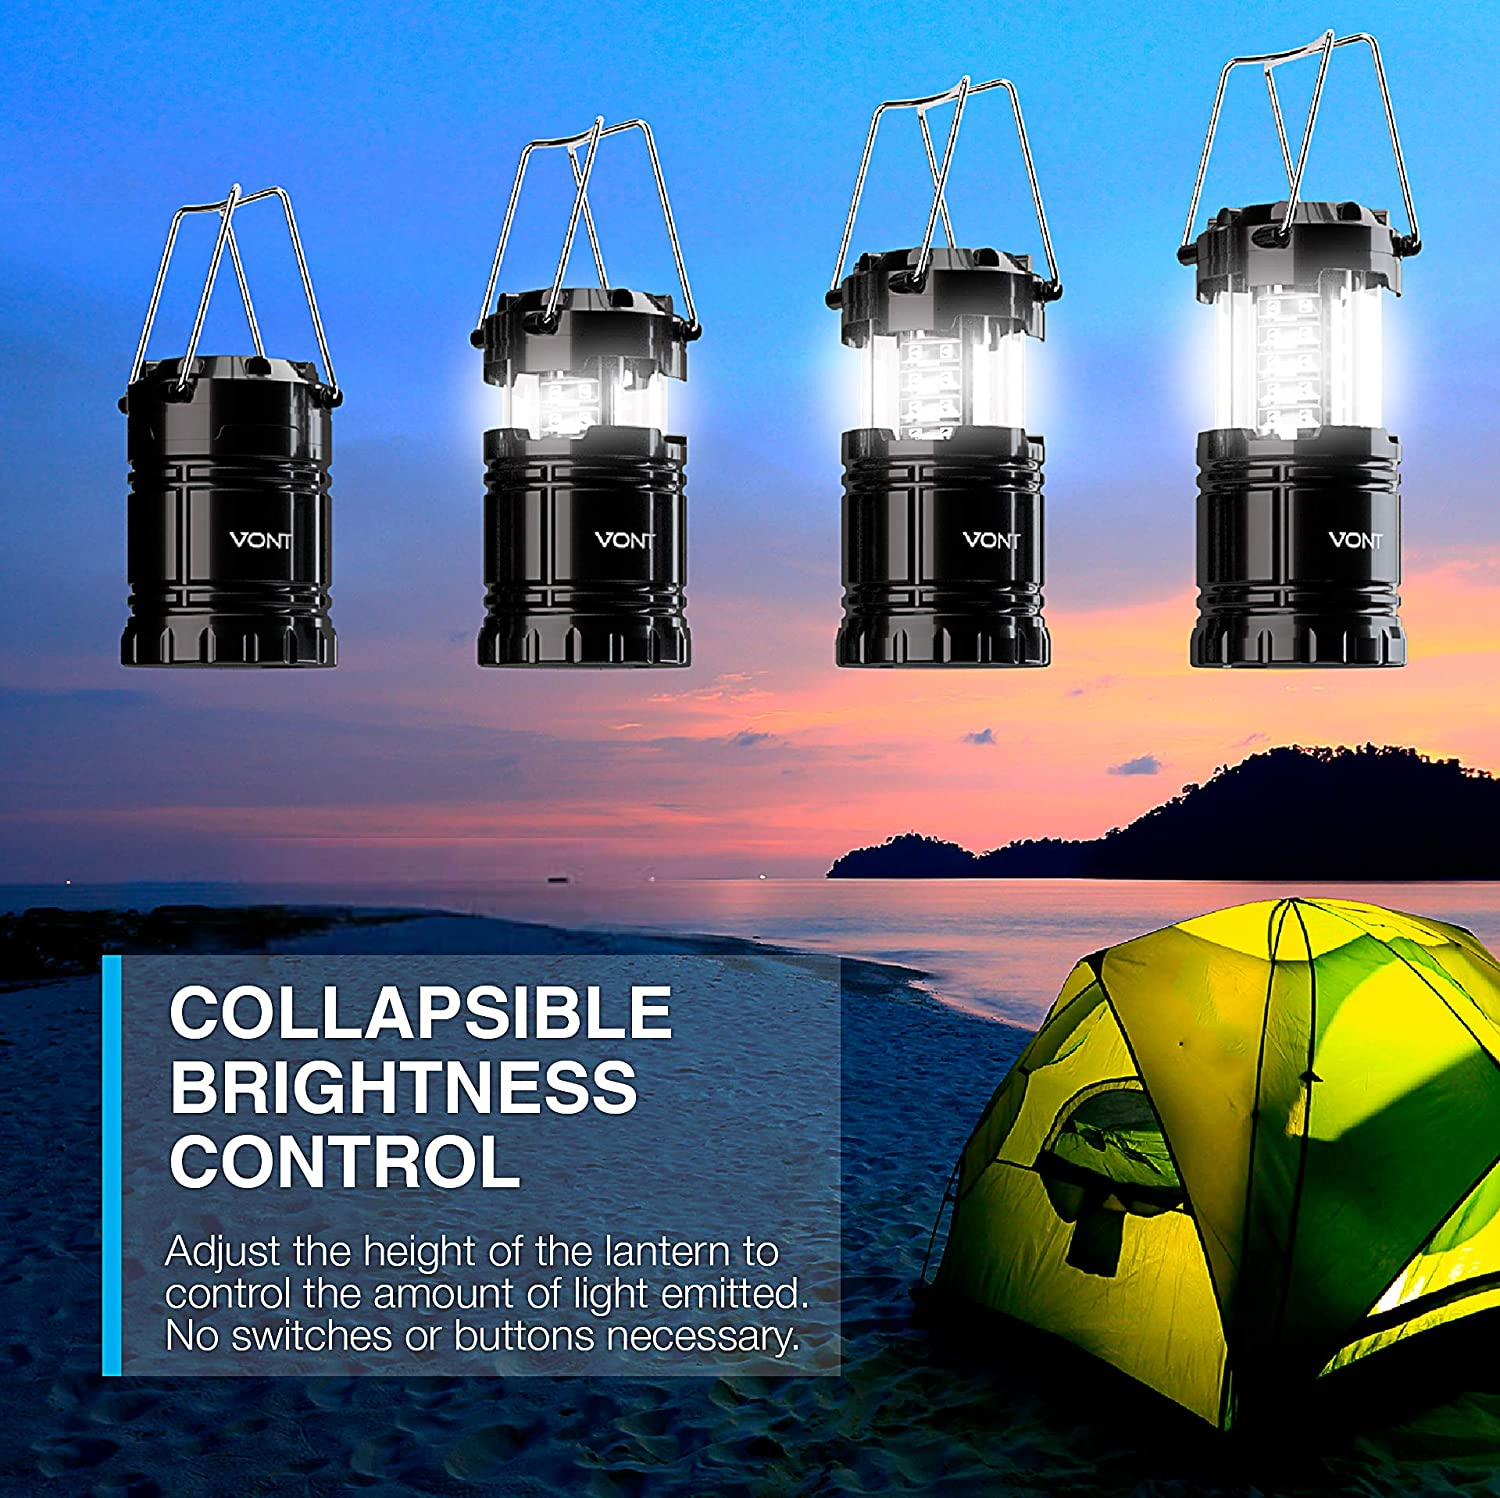 Vont 2 Pack LED Camping Lantern, Super Bright Portable Survival Lanterns, Must Have During Hurricane, Emergency, Storms, Outages, Original Collapsible Camping Lights / Lamp (Batteries Included)